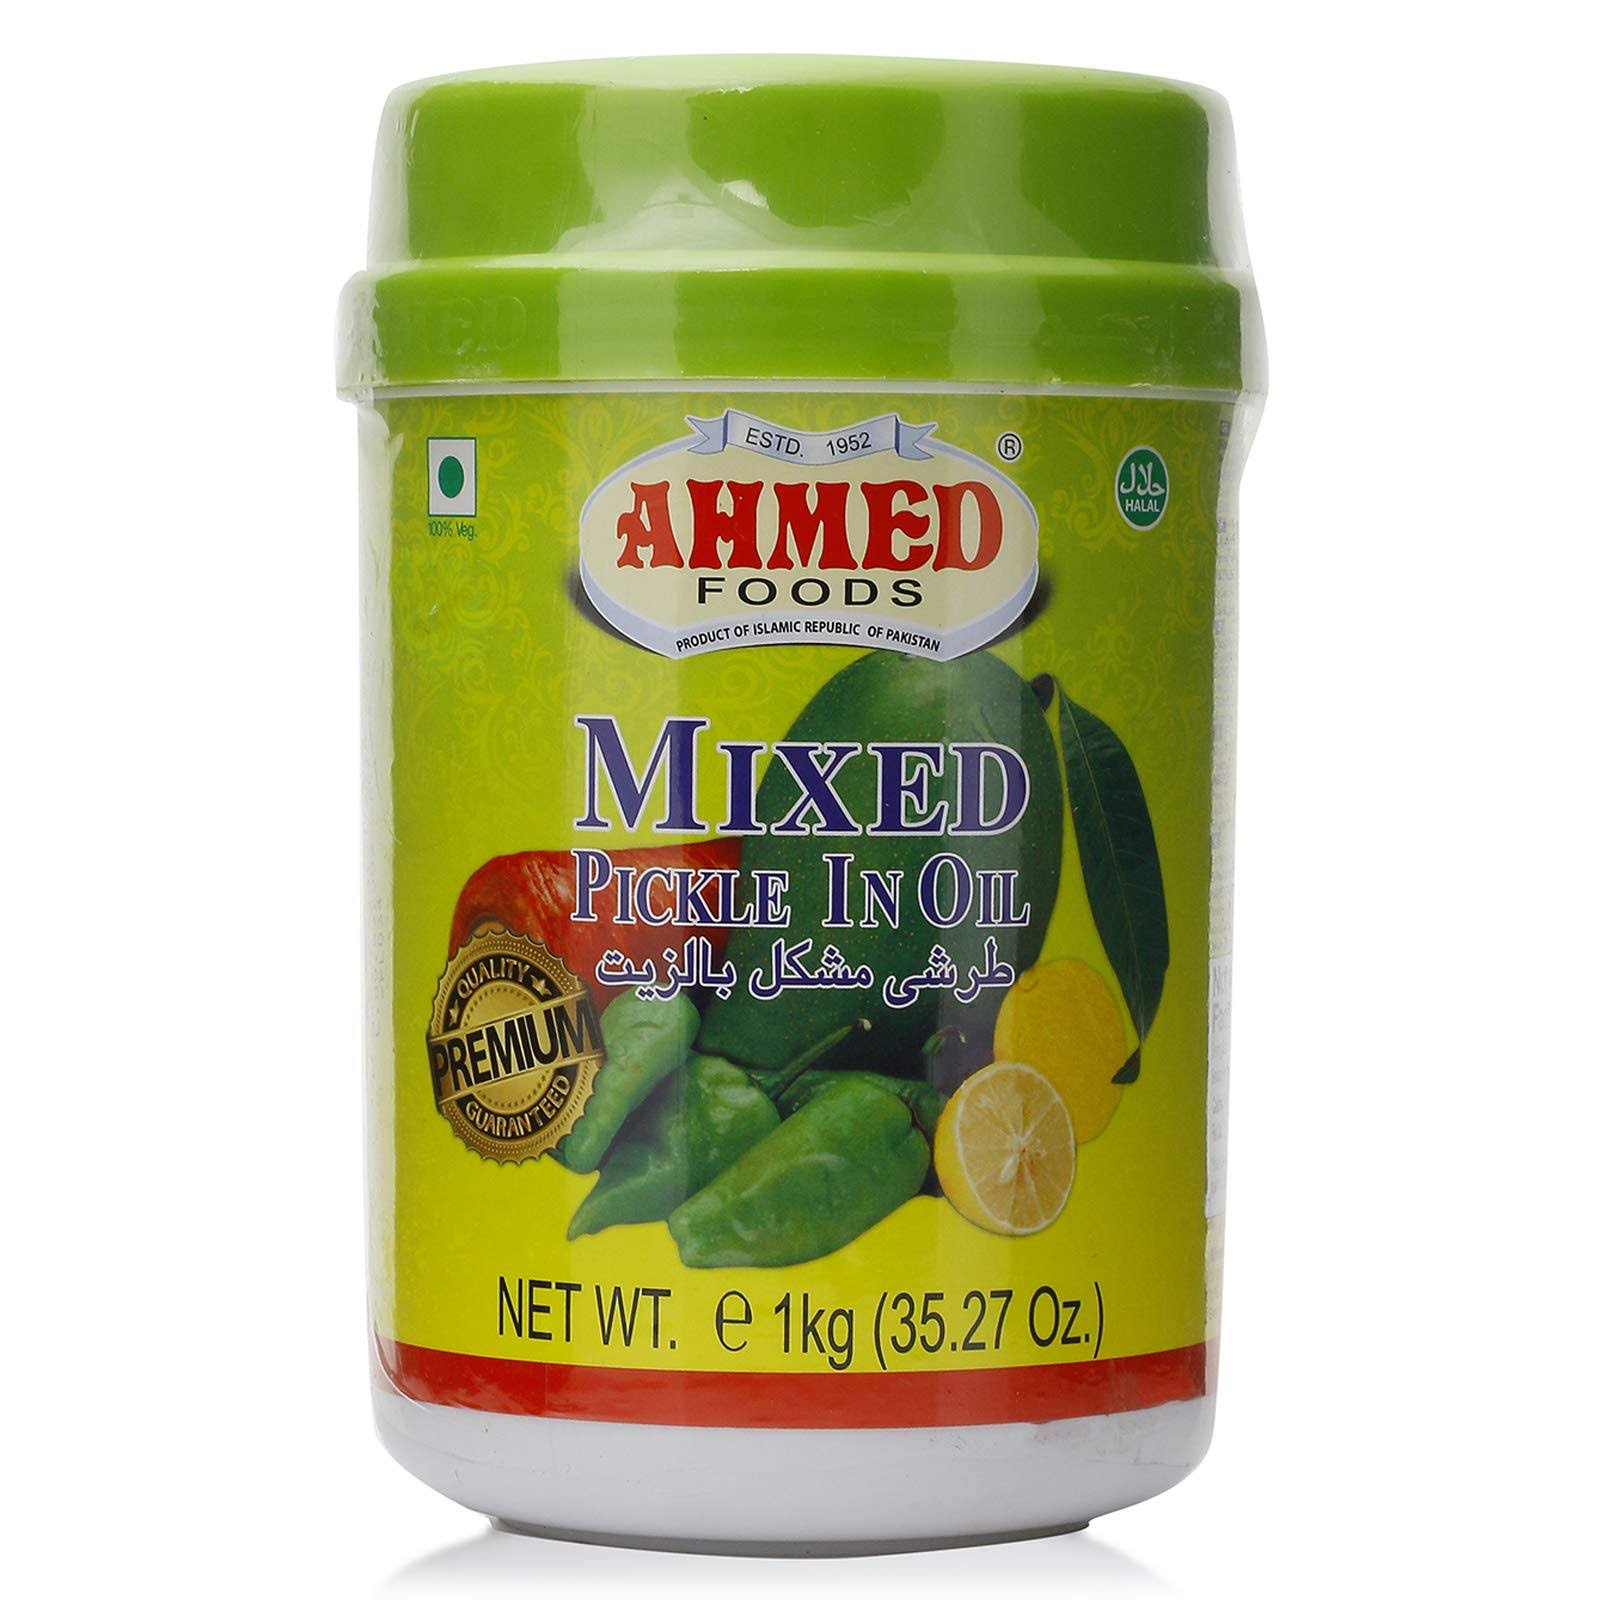 Ahmed Foods Mixed Pickle in Oil - 1kg